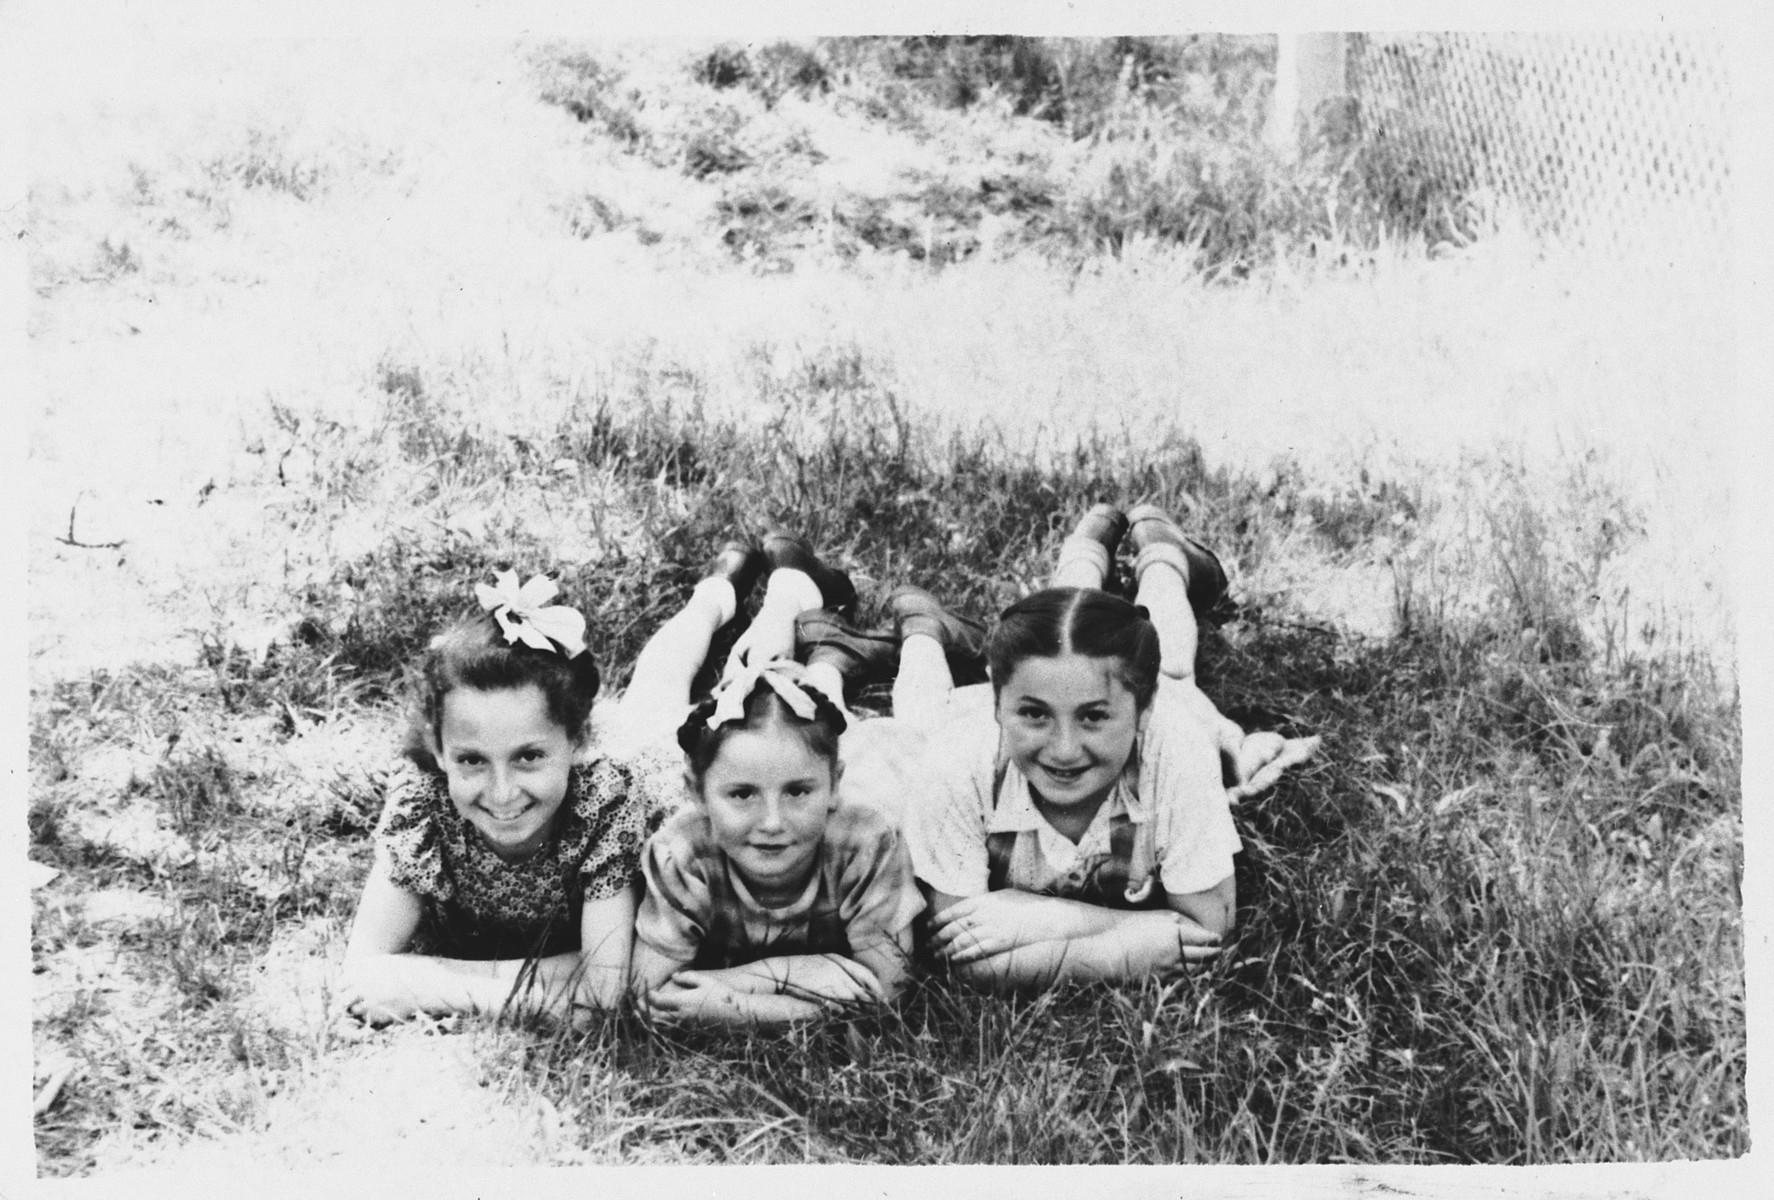 Sonia Dzienciolski and two friends lie down in a grassy field.